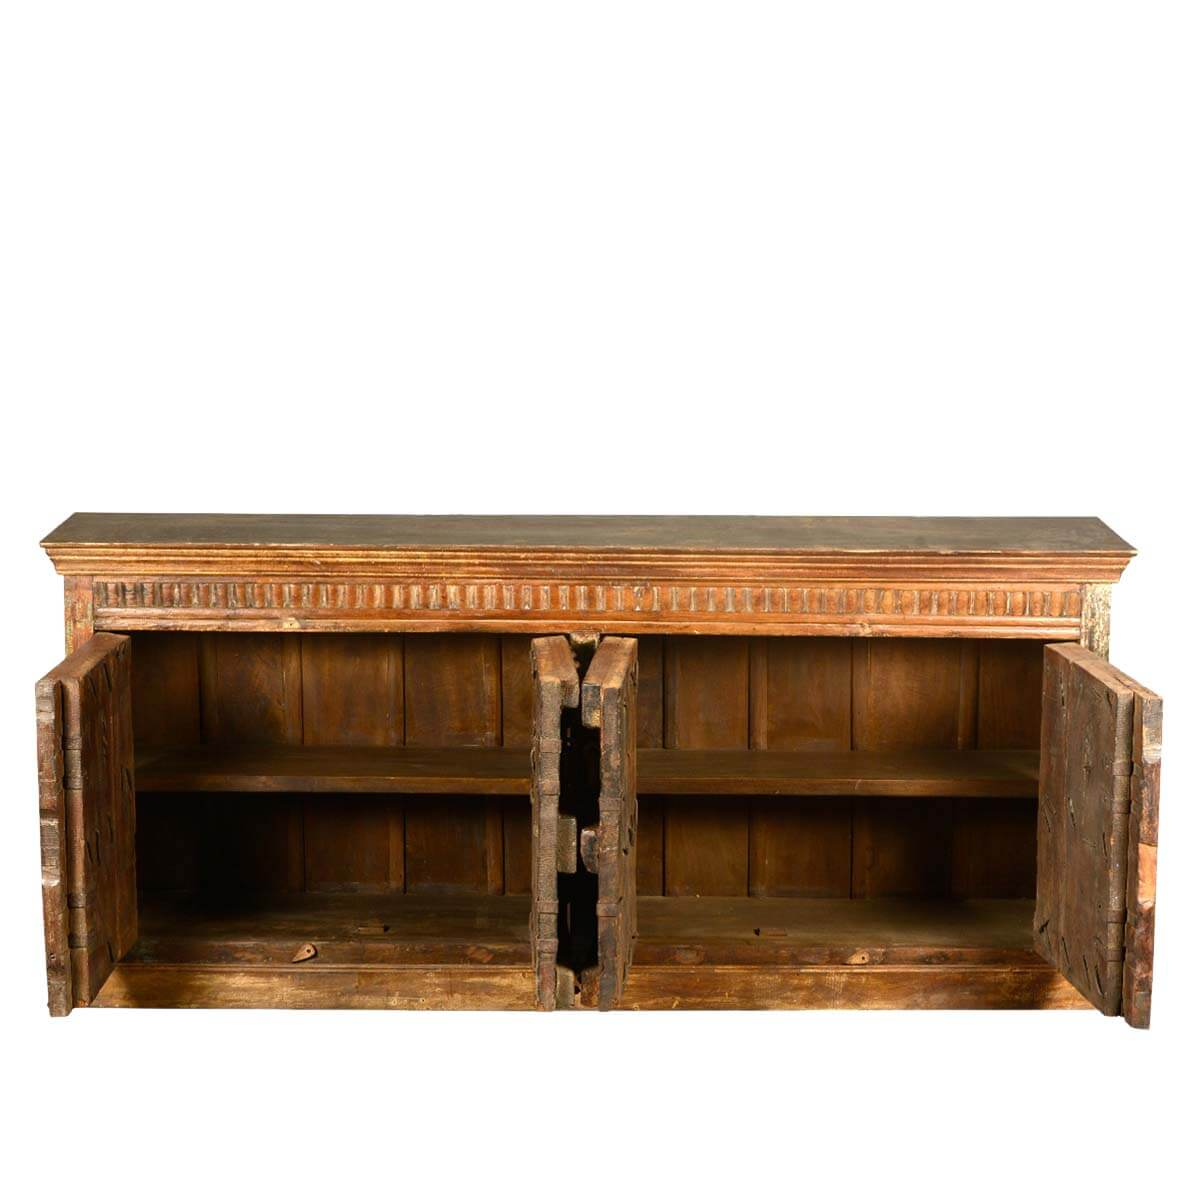 Reclaimed Wood Furniture Large Gothic 4 Door Sideboard  : 50922 from sierralivingconcepts.com size 1200 x 1200 jpeg 101kB